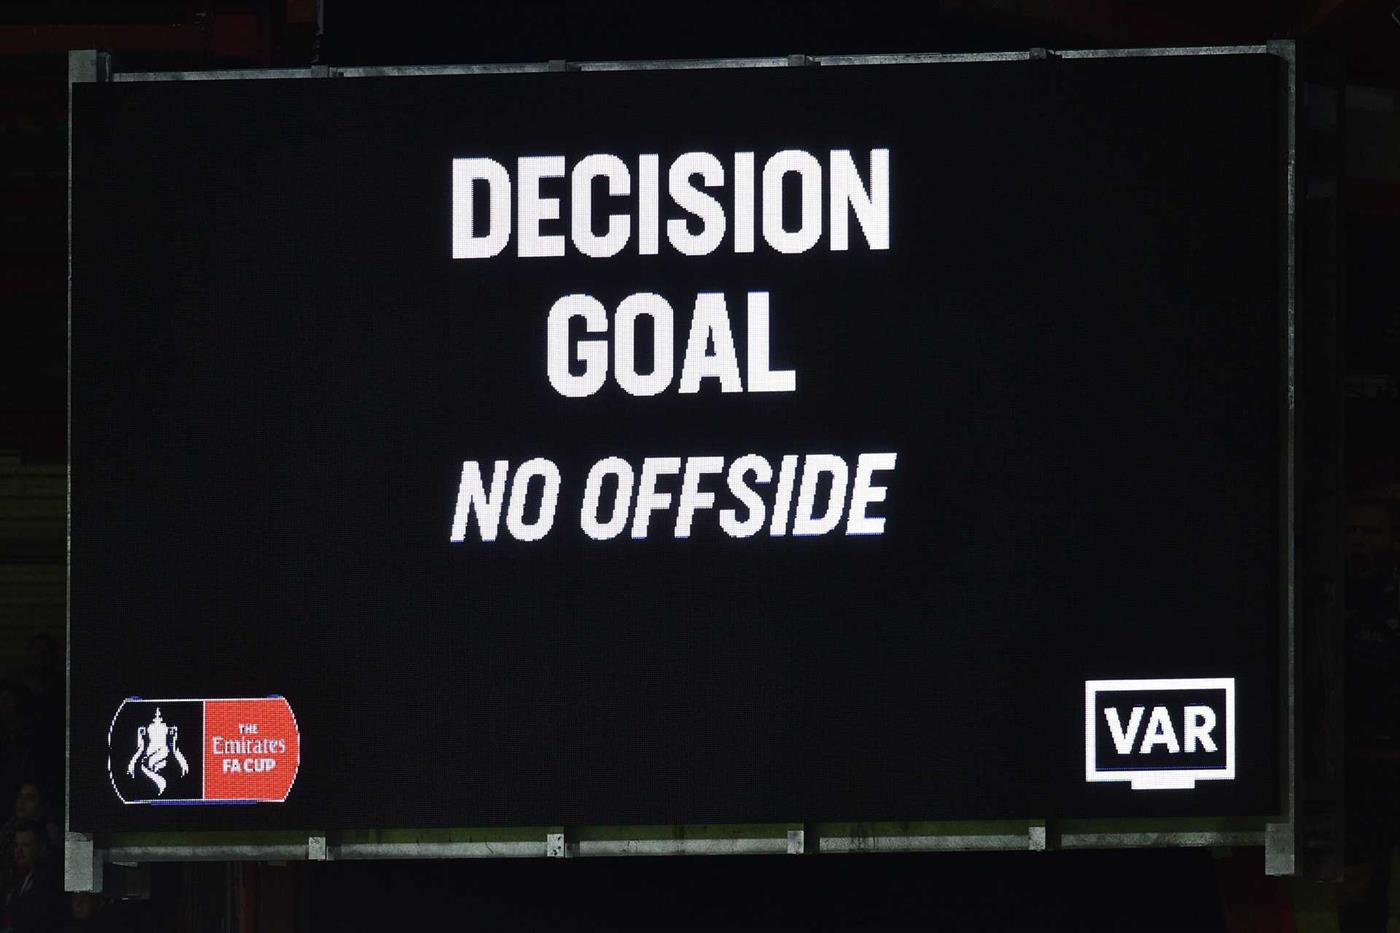 VAR cancels an offside goal in a FA Cup game